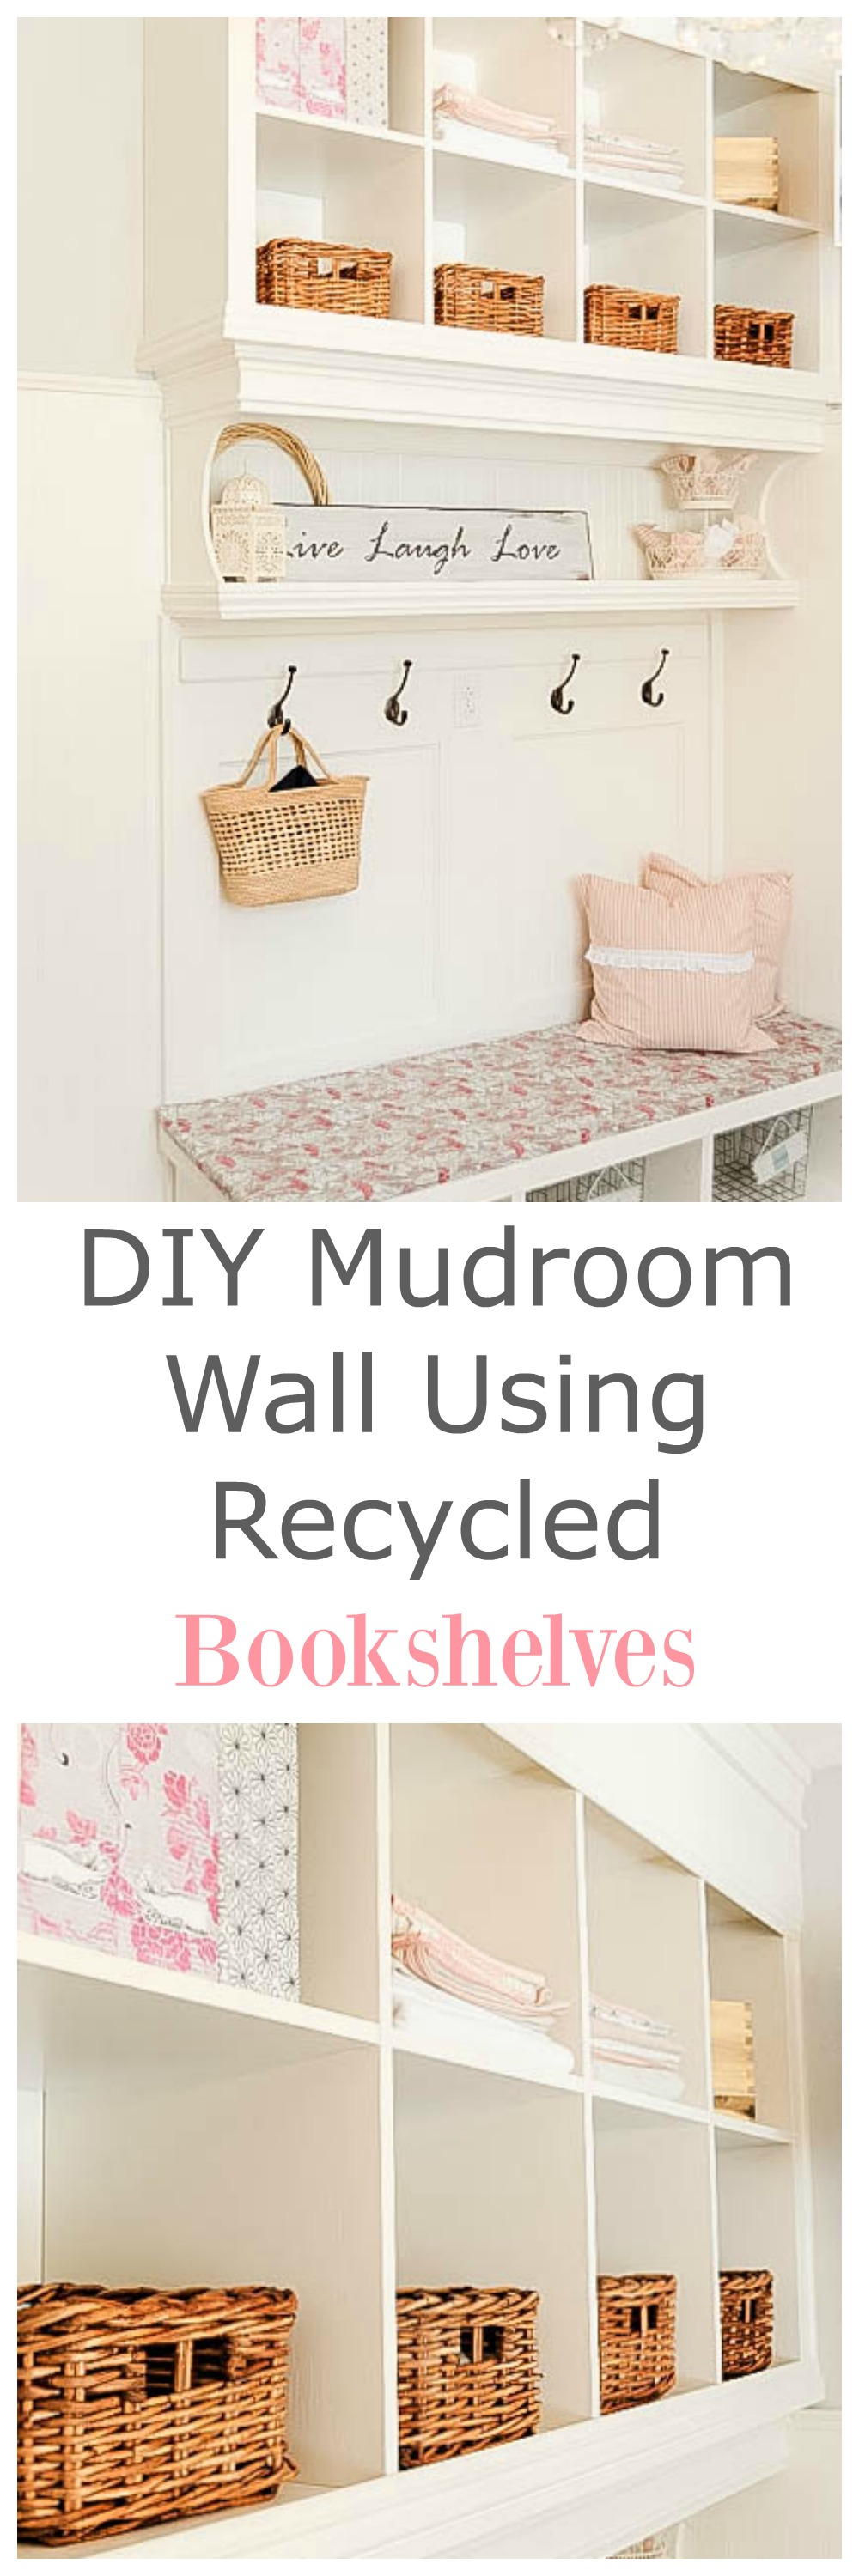 Learn how to make a organized mudroom wall using 2 used bookshelves from Ikea